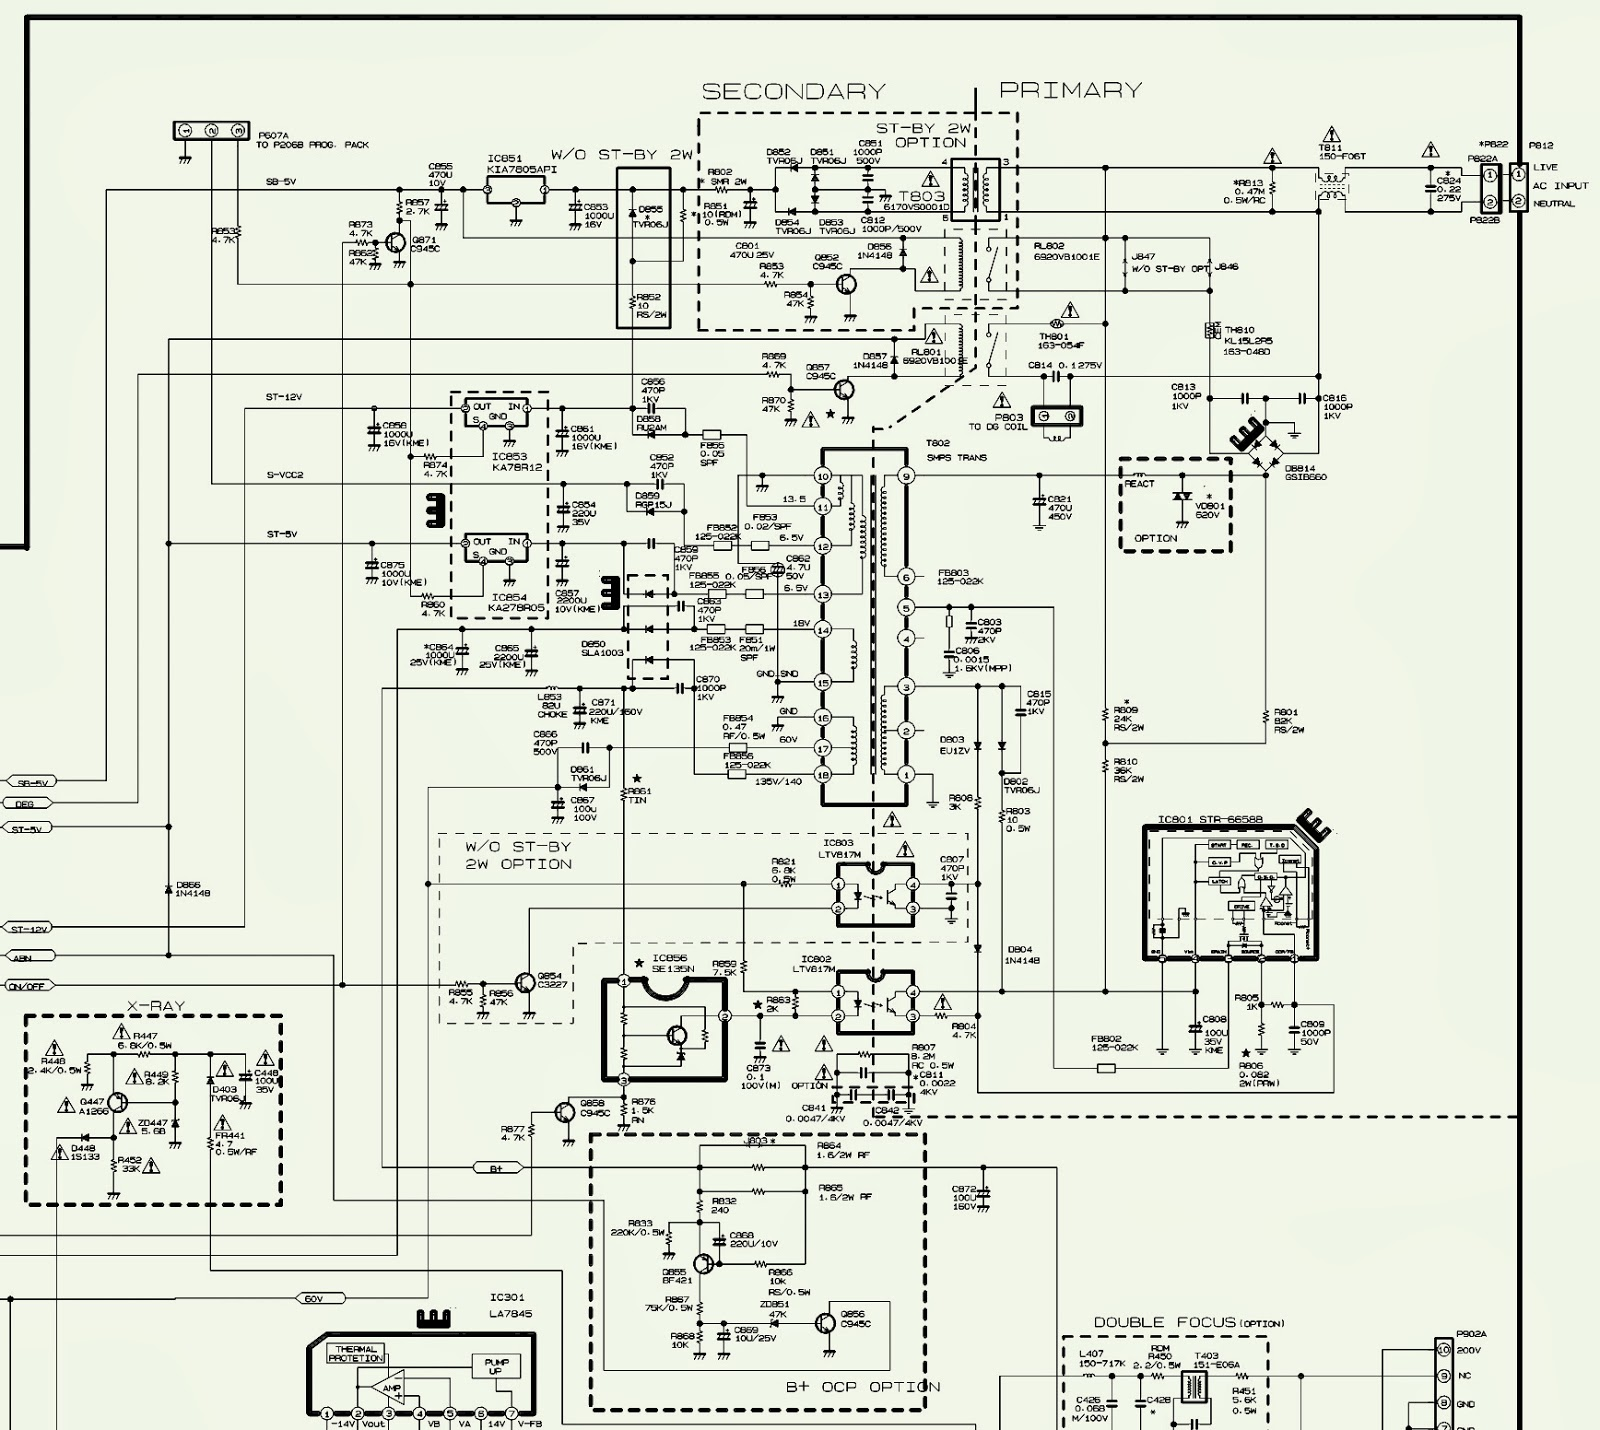 tv schematic diagrams wiring diagram go led tv schematic diagram books [ 1600 x 1430 Pixel ]